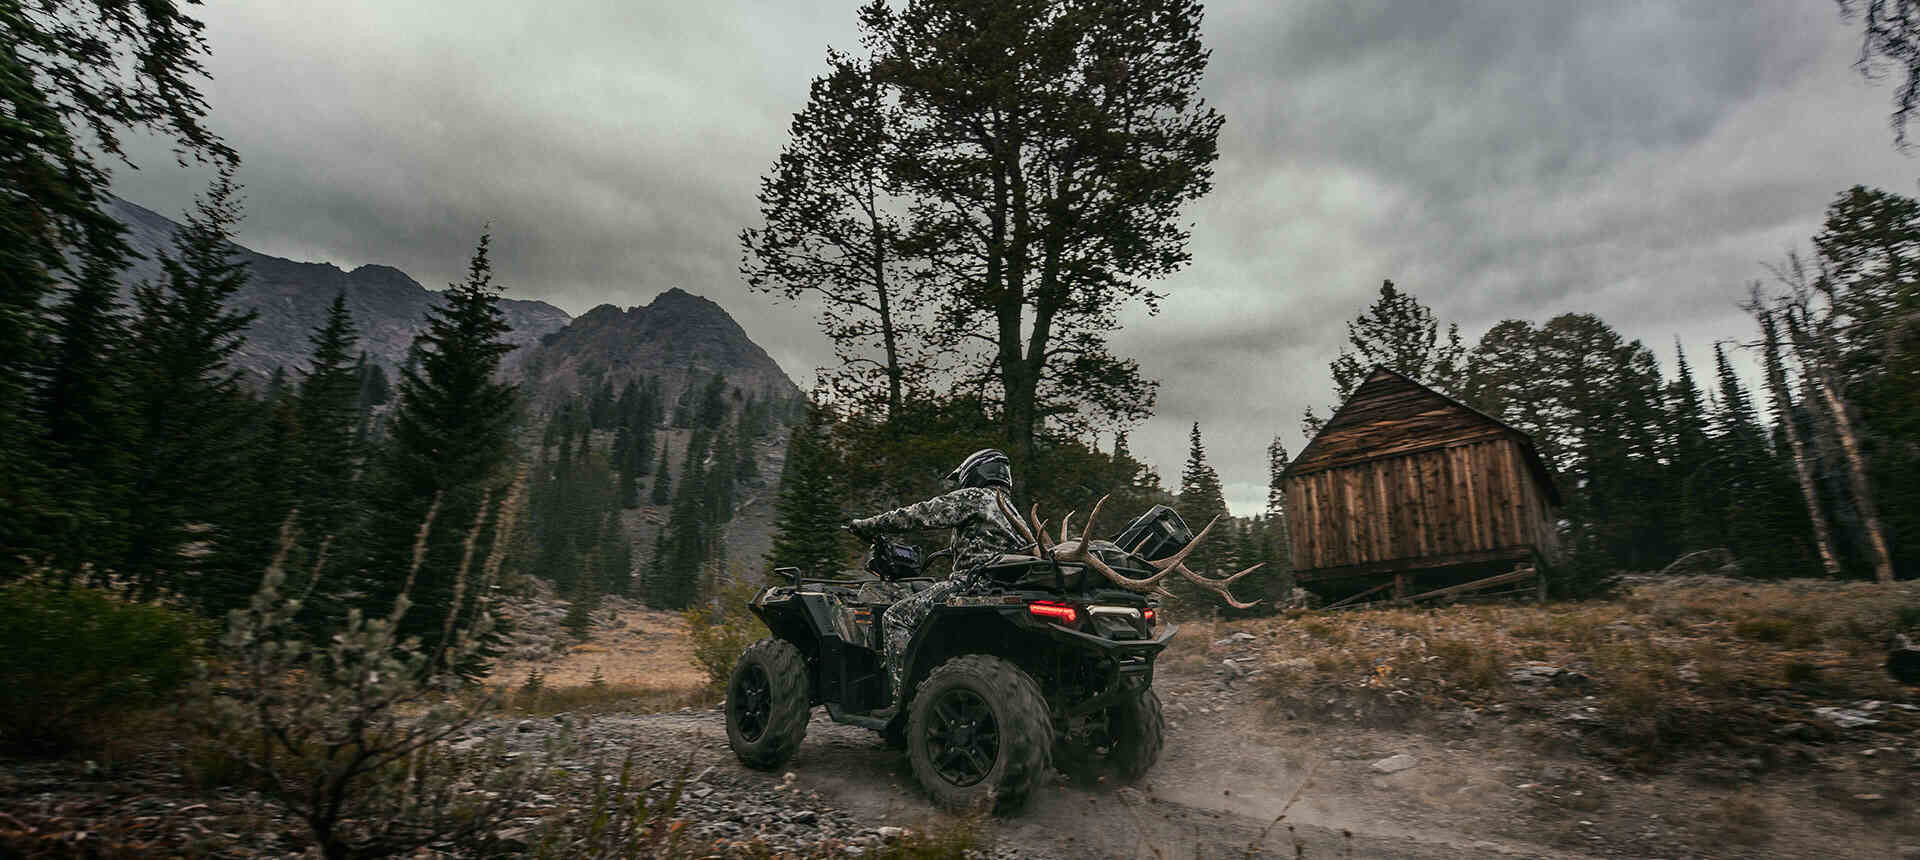 2020 Sportsman® XP 1000 Hunter Edition Instagram image 4